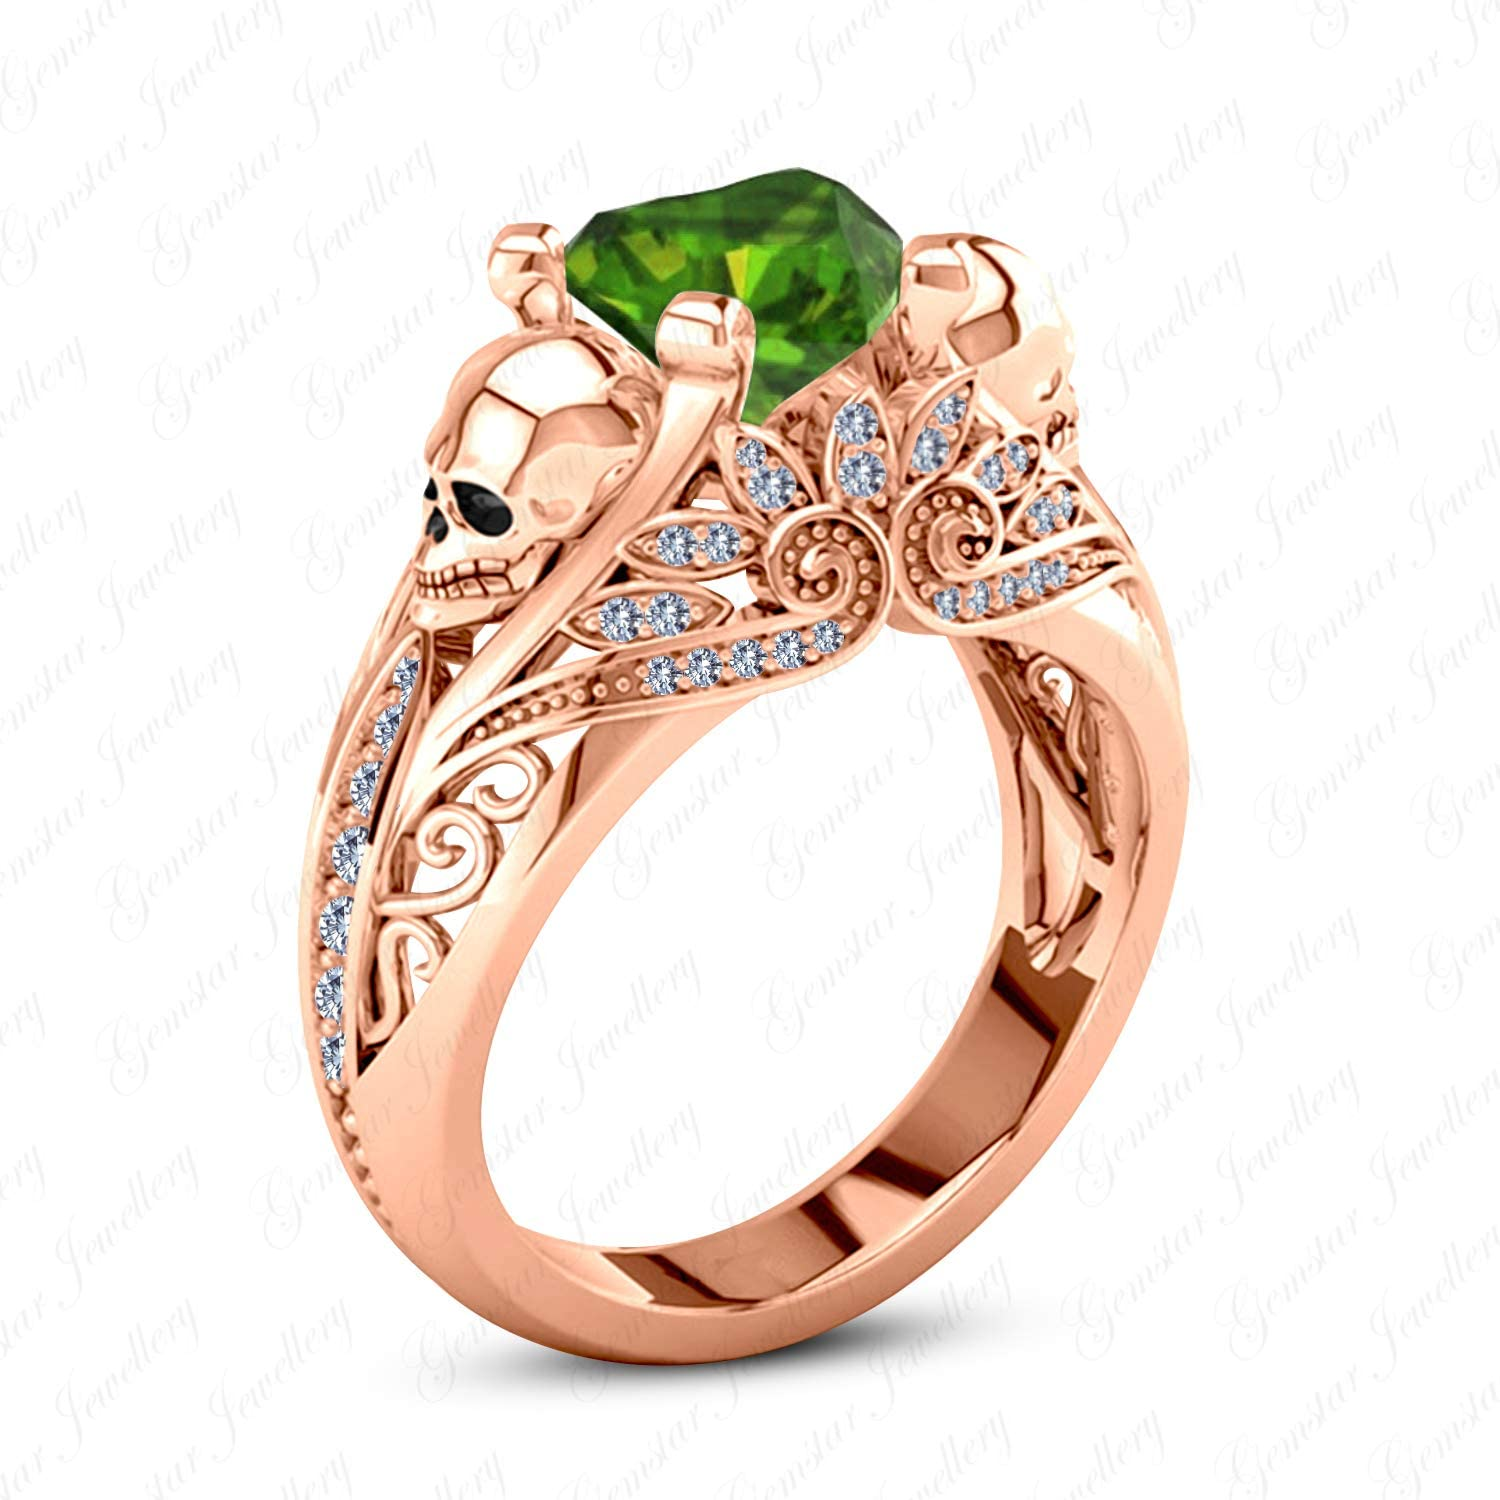 Gemstar Jewellery Gothic Skull Ring with Heart Green Emerald 925 Solid Silver 14k pink gold Plated